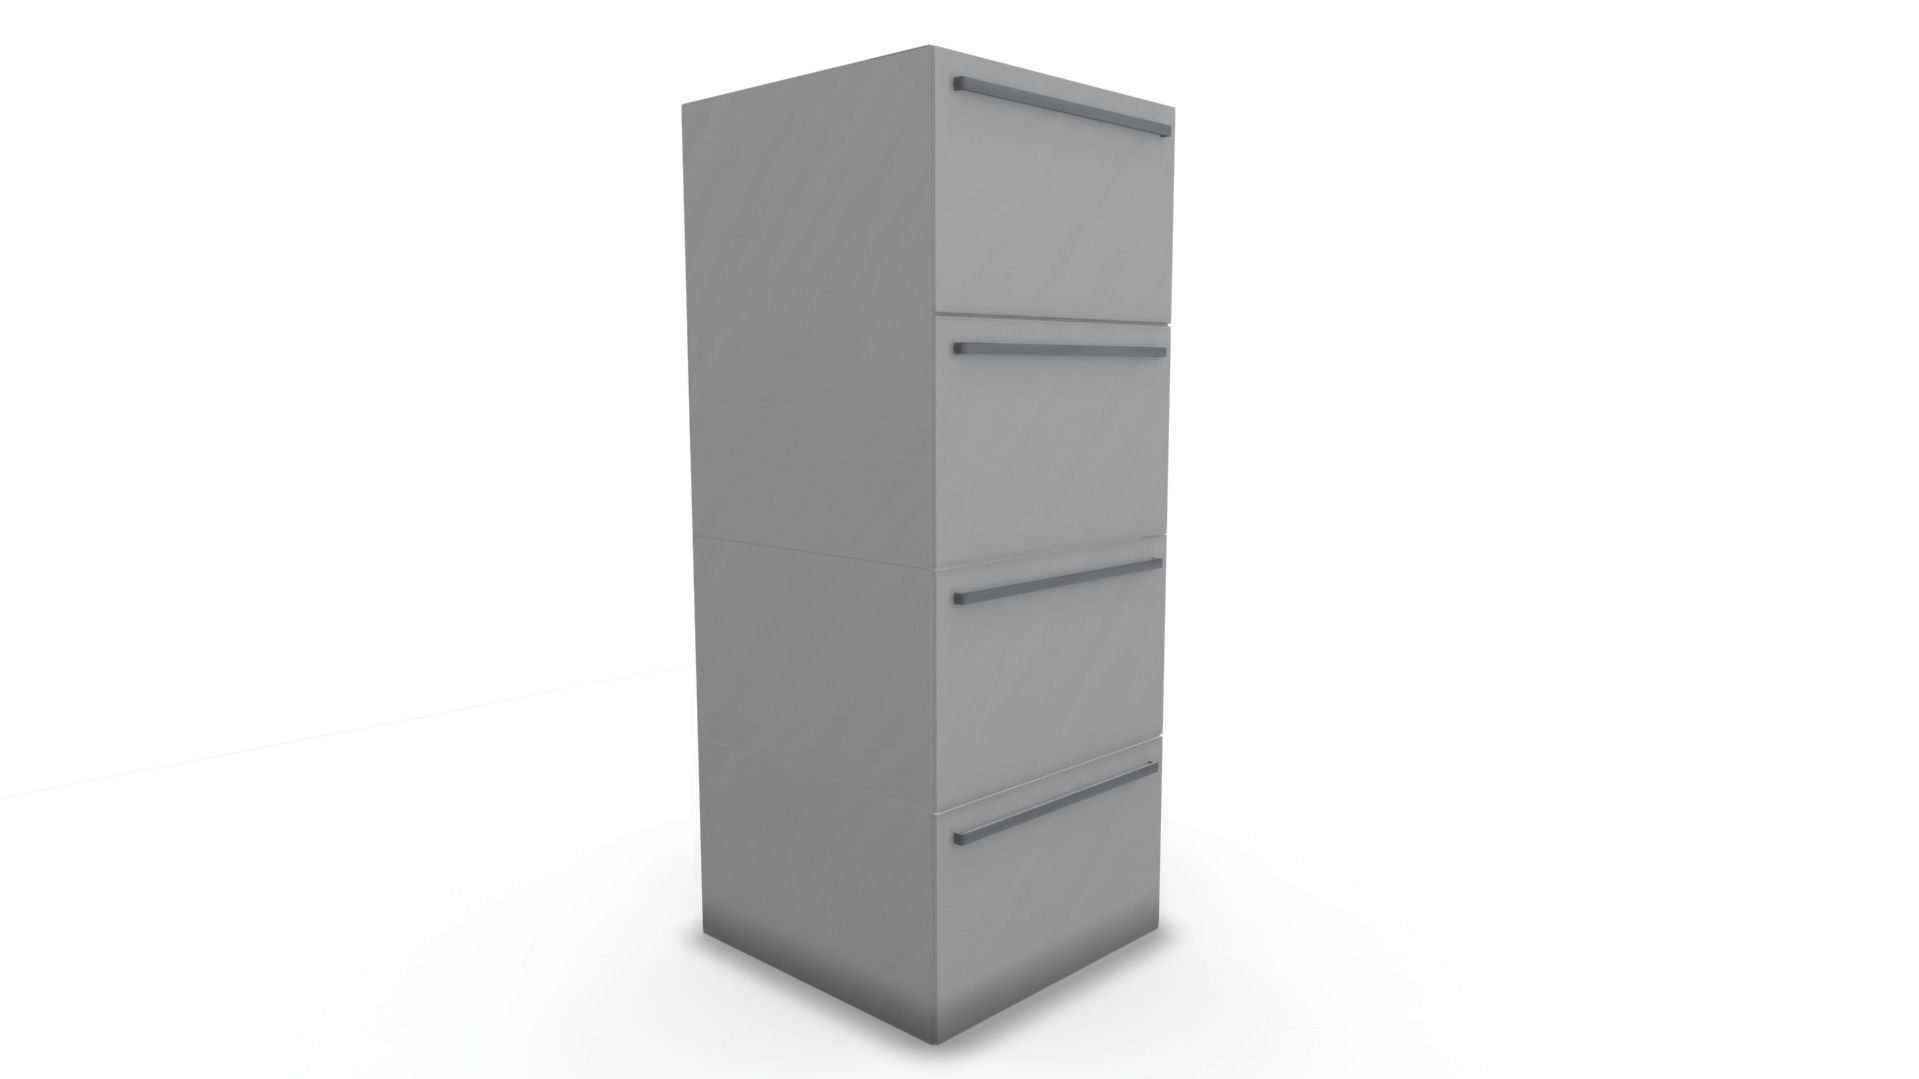 How to Open a Locked Filing Cabinet